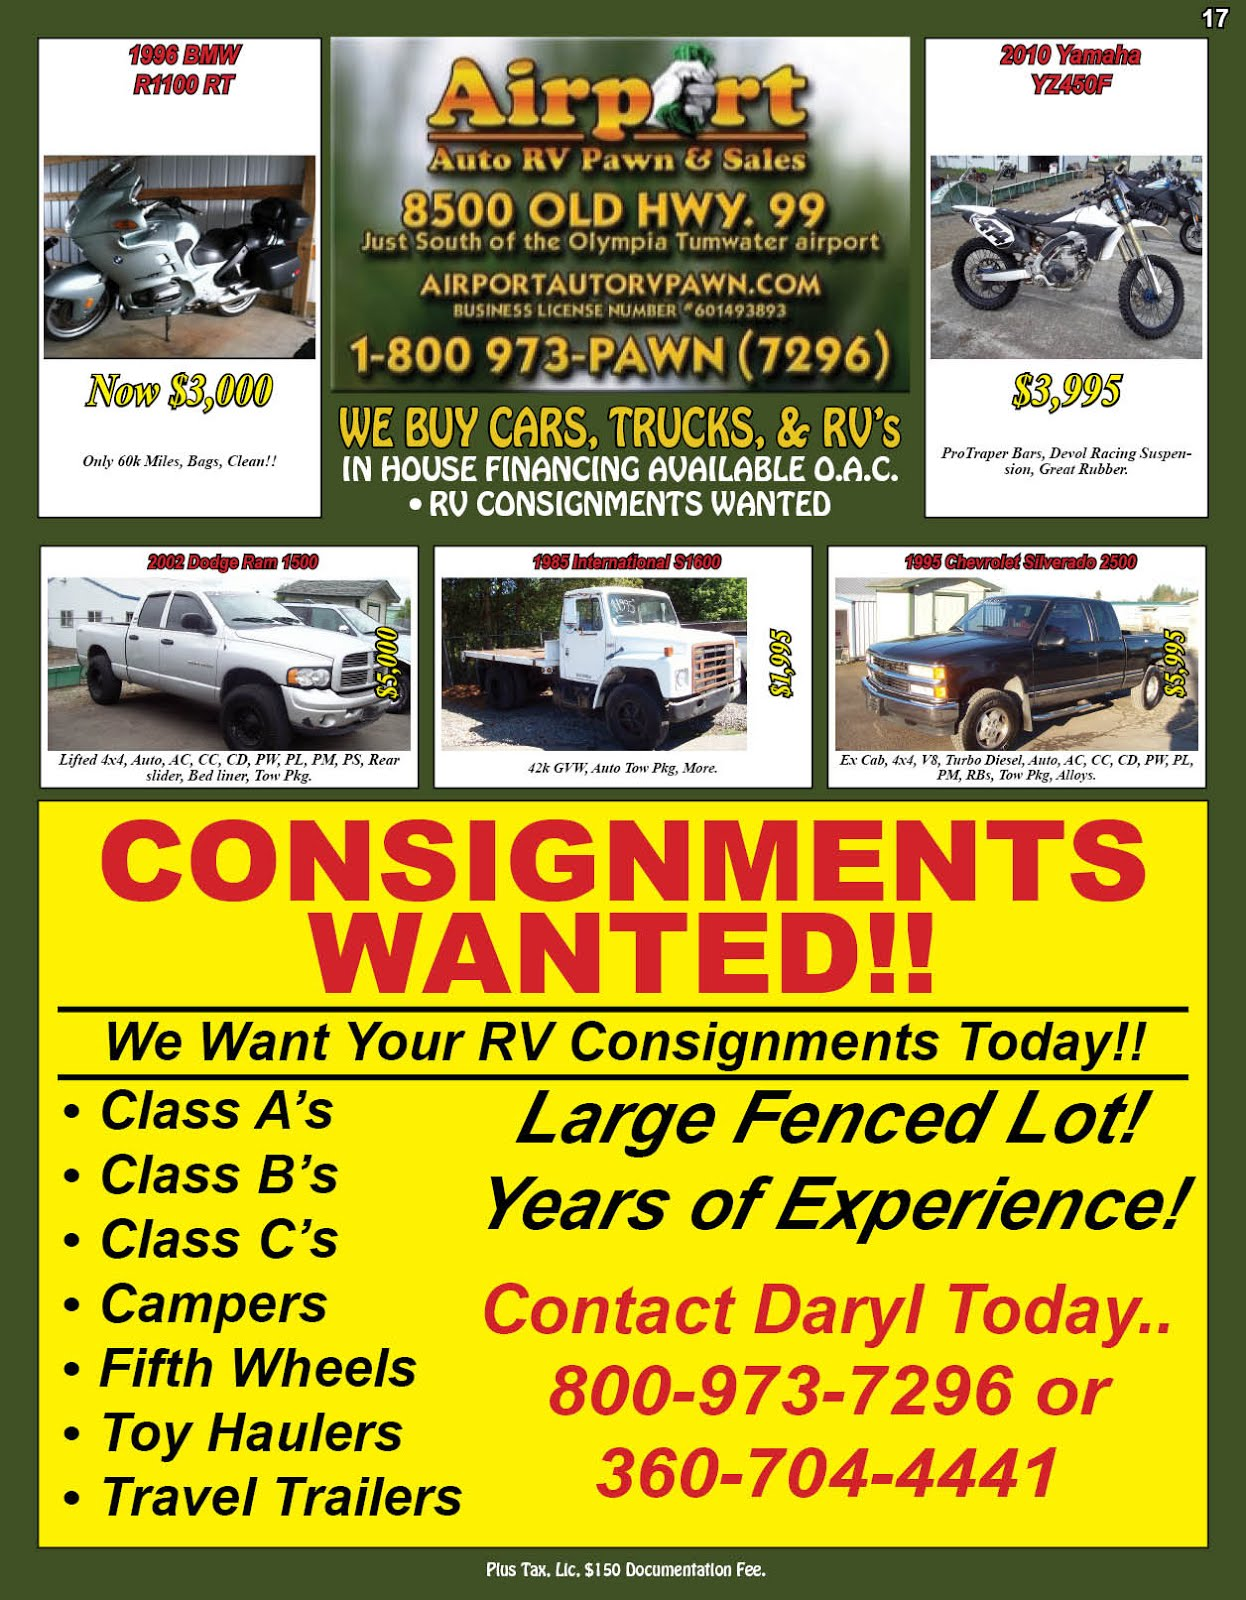 Airport Auto RV Pawn & Sales